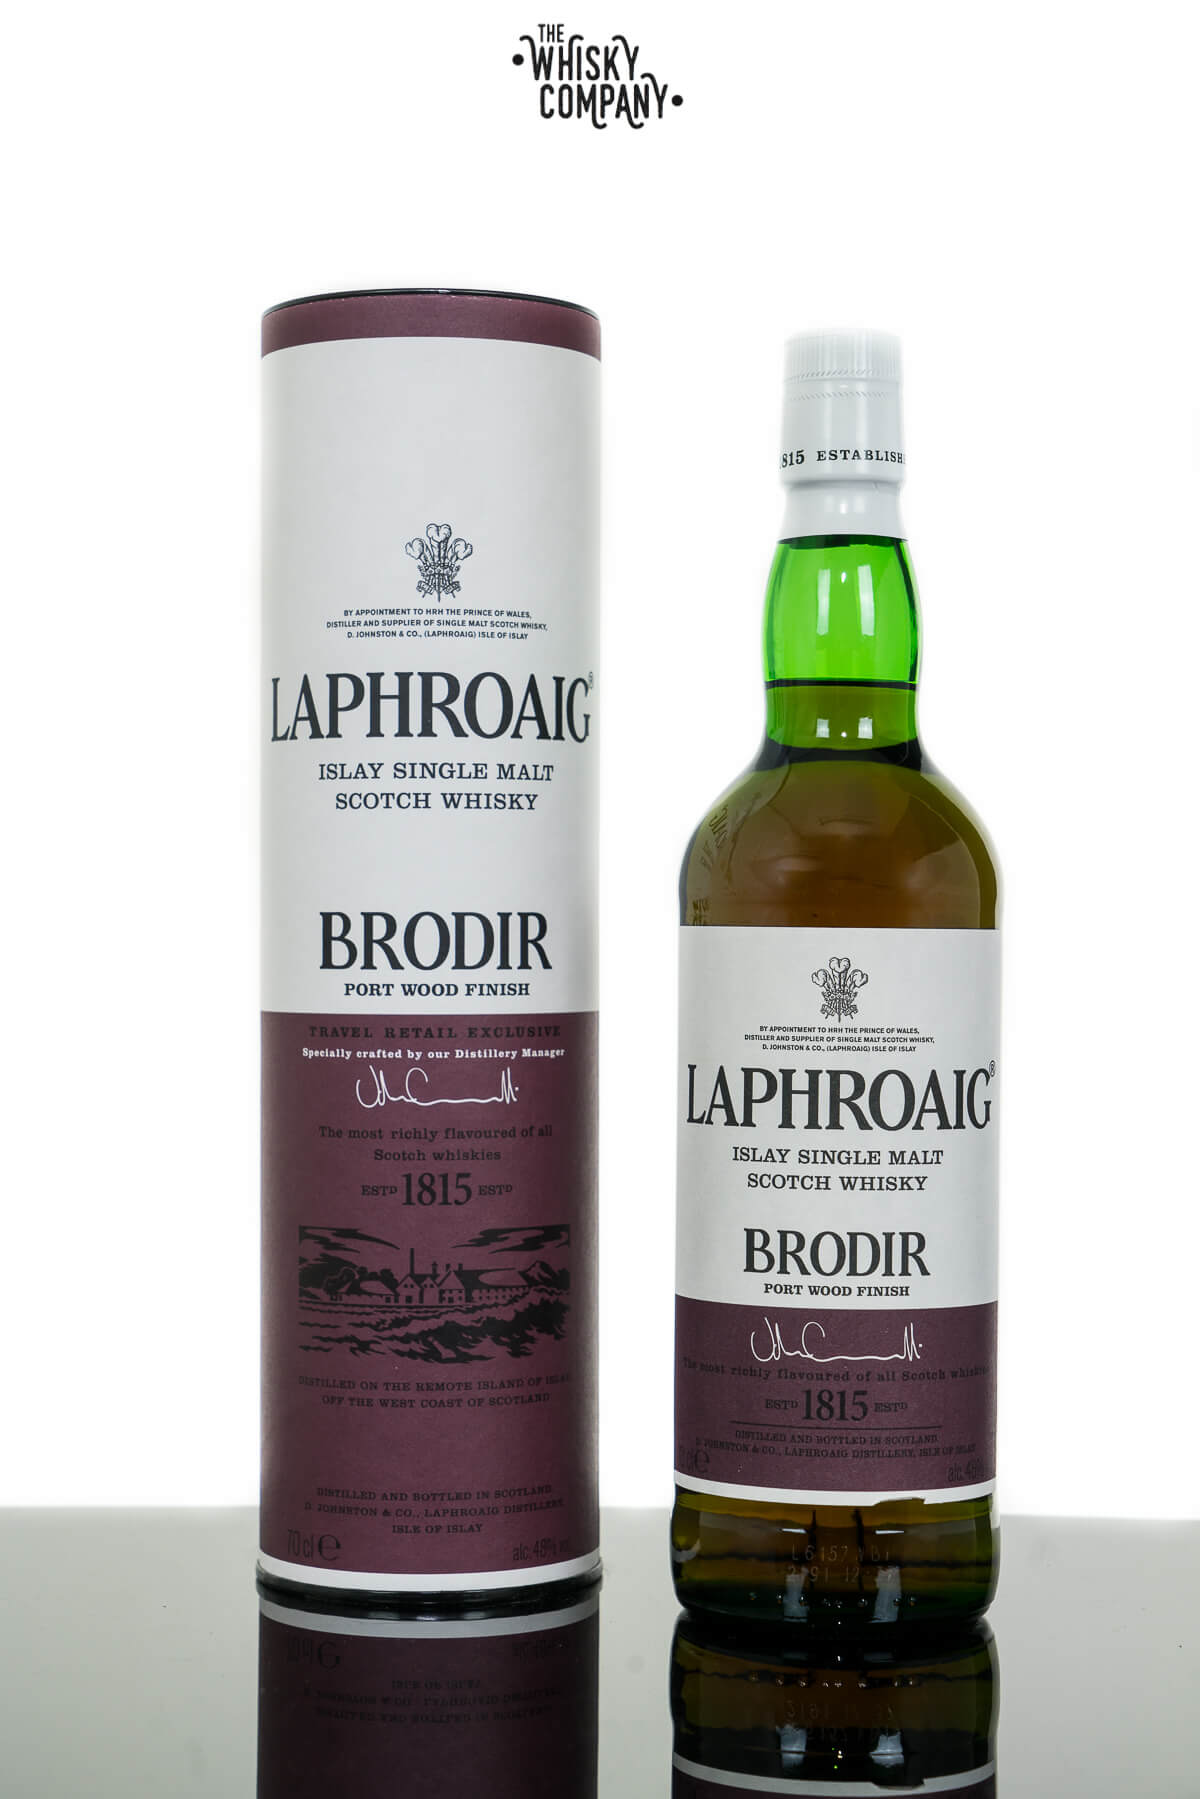 Laphroaig Brodir Islay Single Malt Scotch Whisky (700ml)